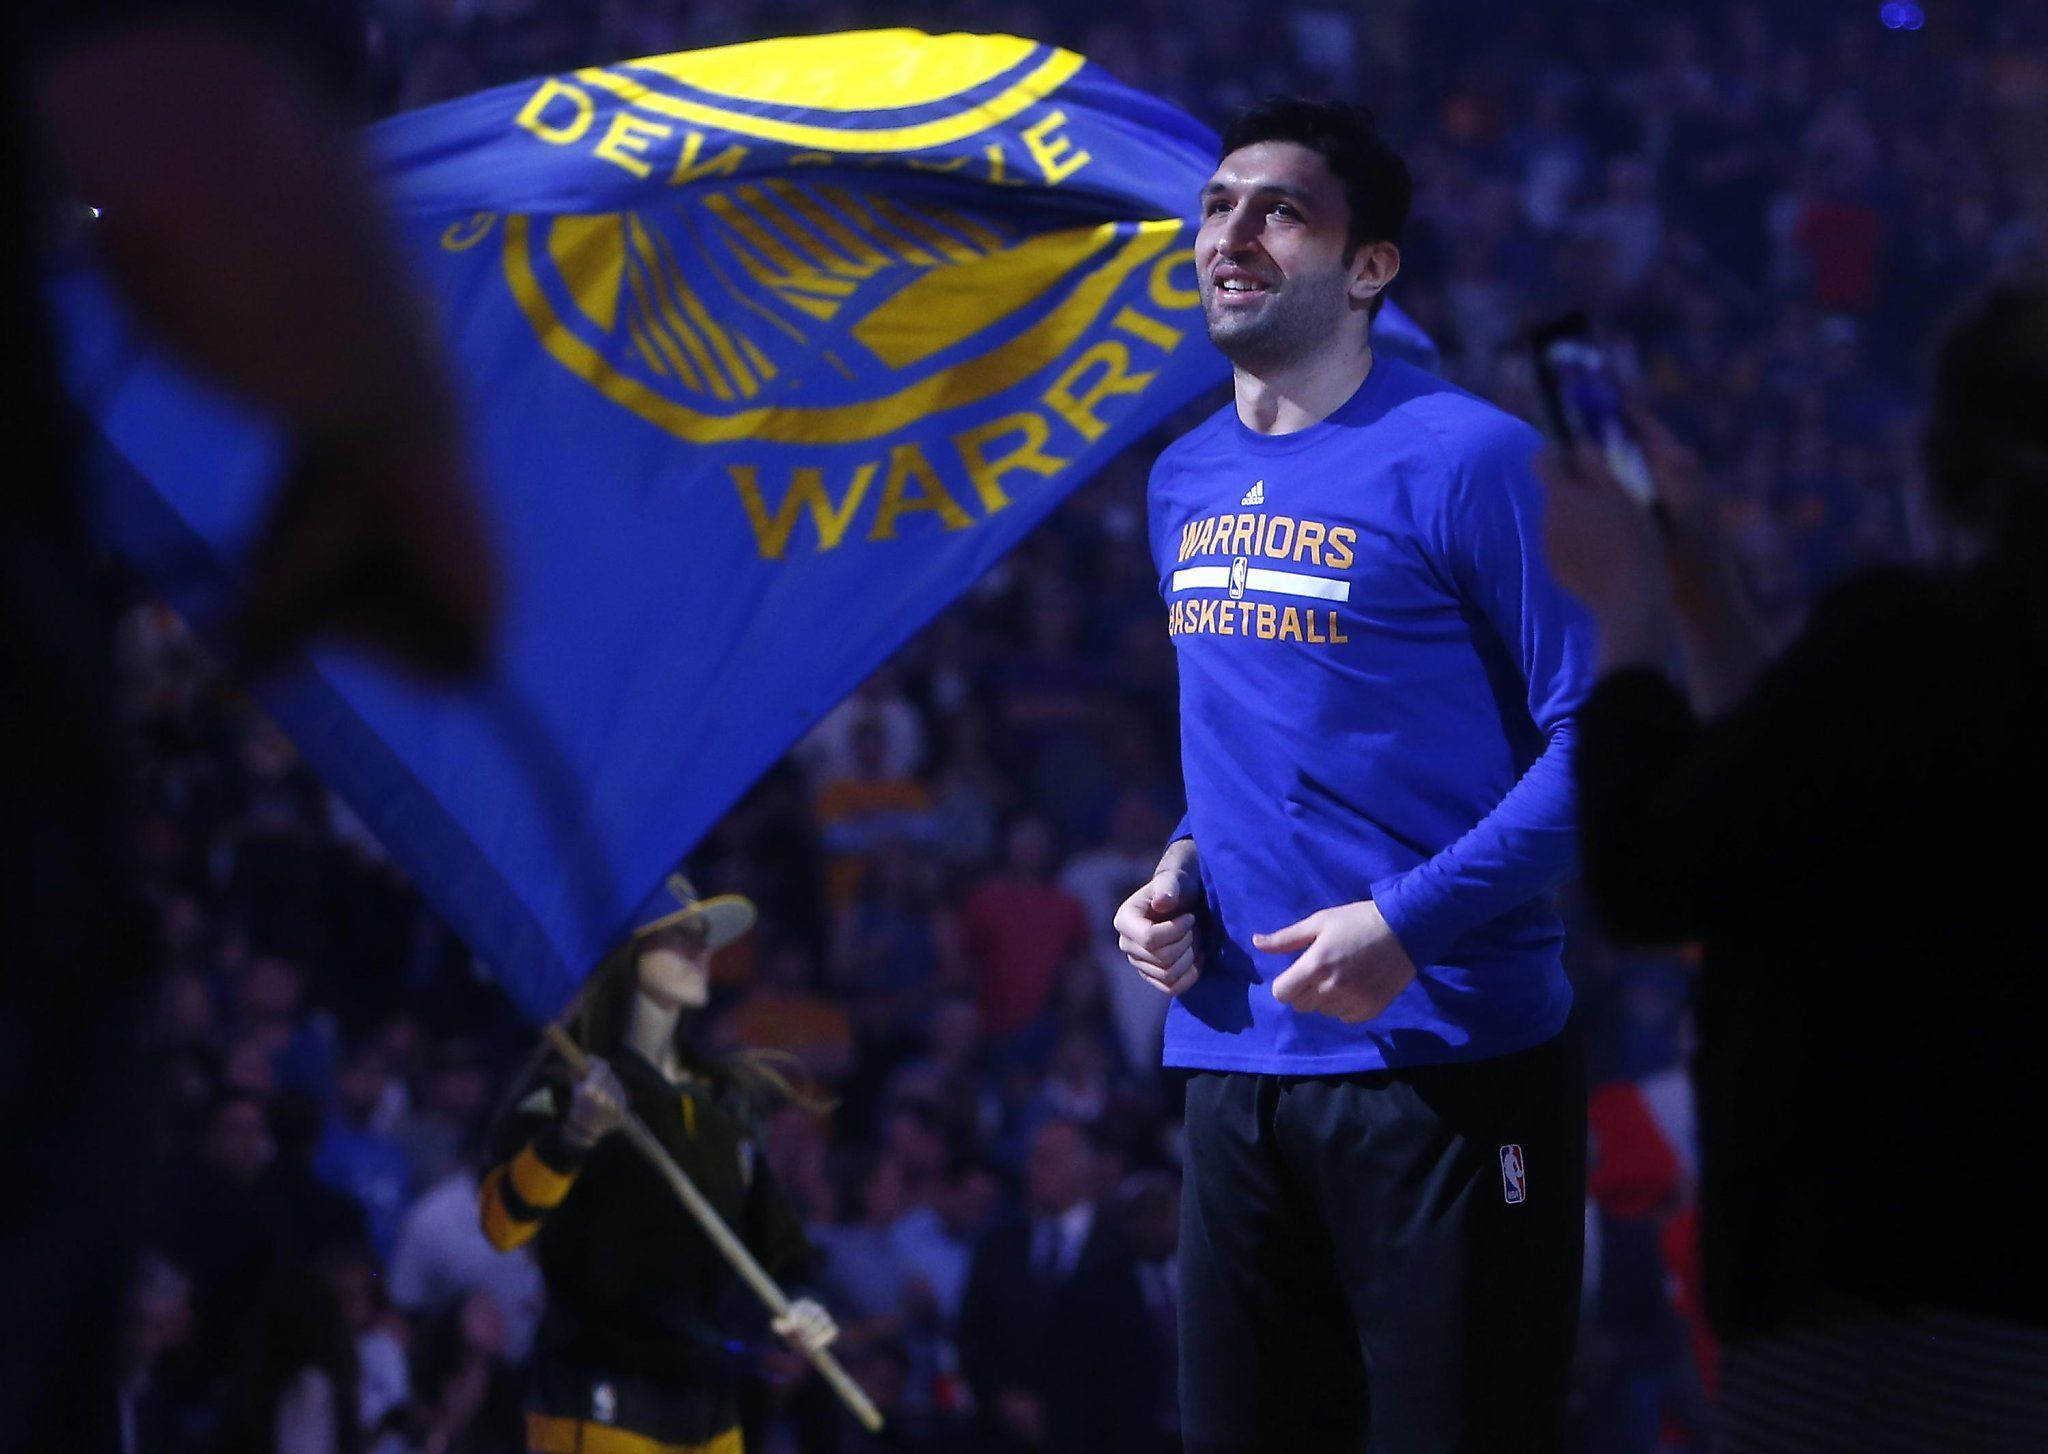 Lunchtime read for #DubNation - why @zaza27 plays to honor his late father » https://t.co/5I9pTKI2vD https://t.co/tAvrPTC4q4